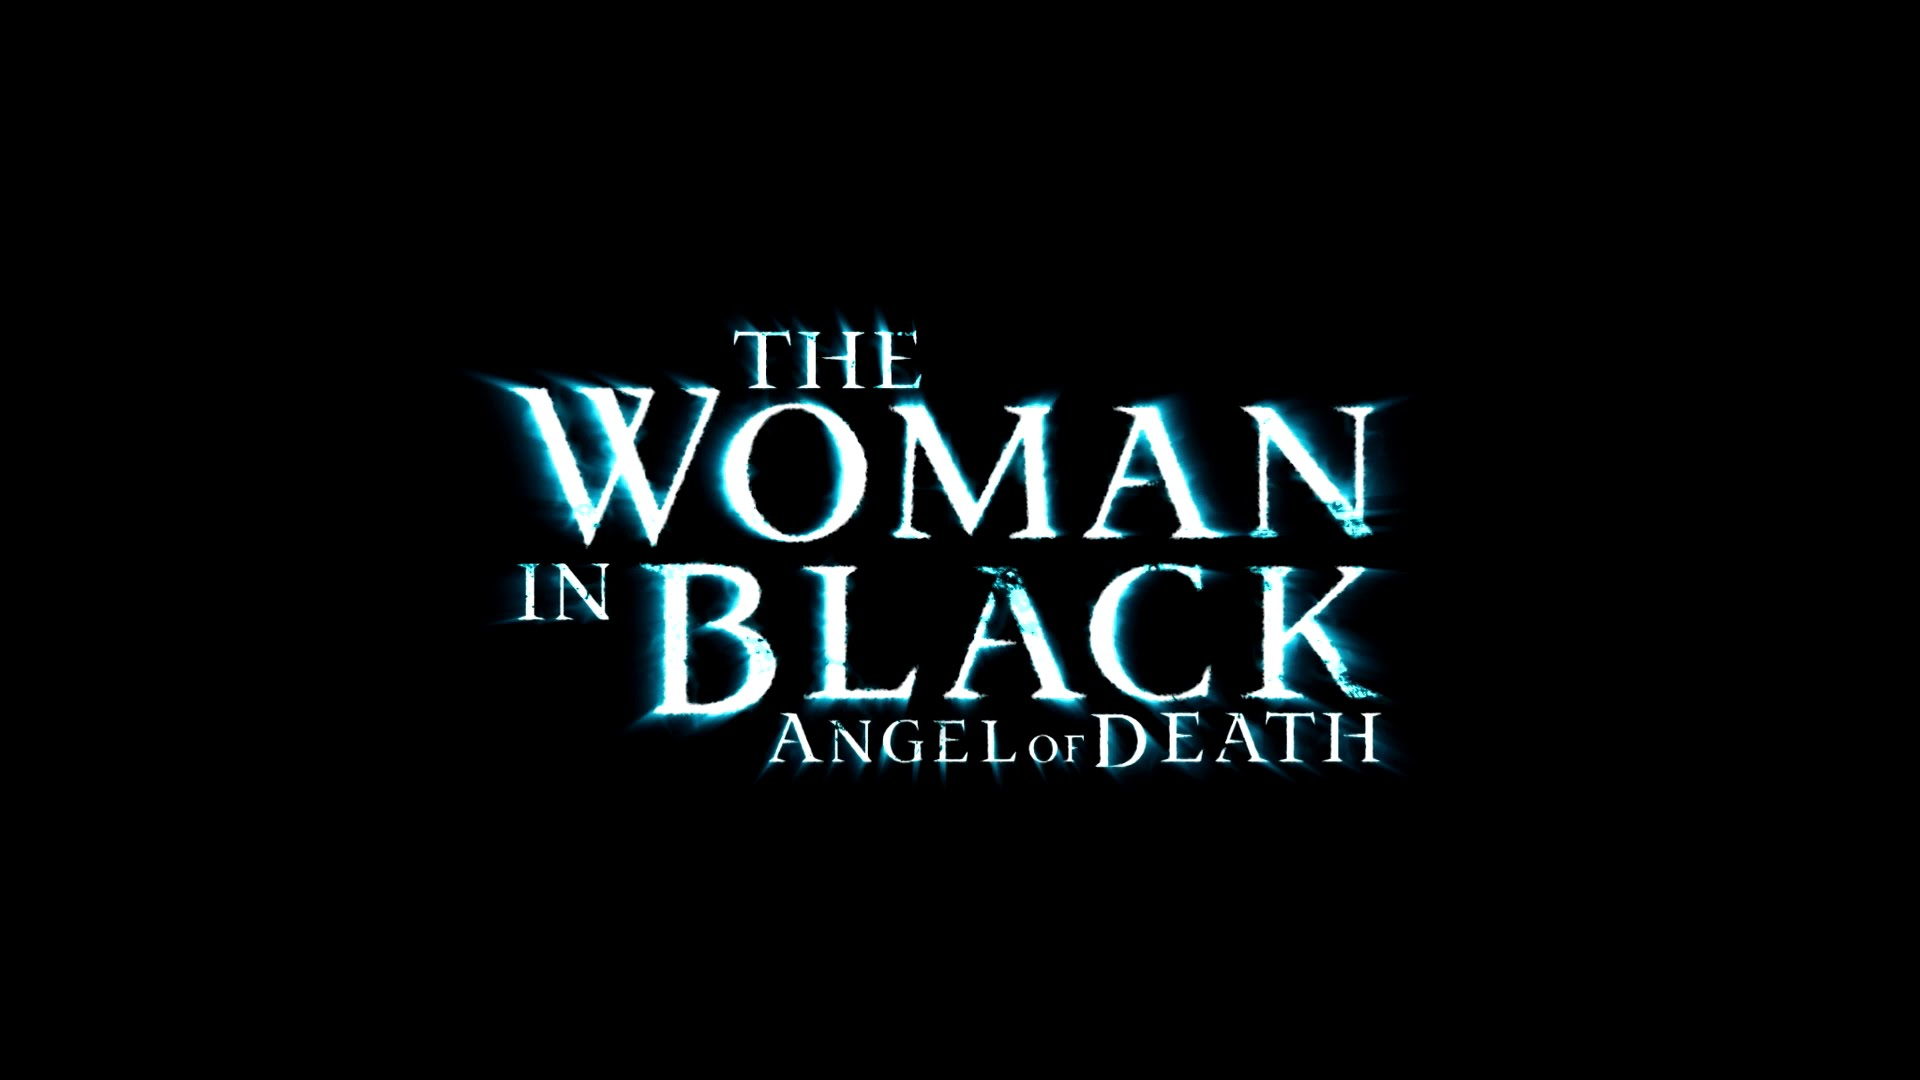 The-Woman-in-Black-Angel-of-Death-2015-movie-hd-wallpapers